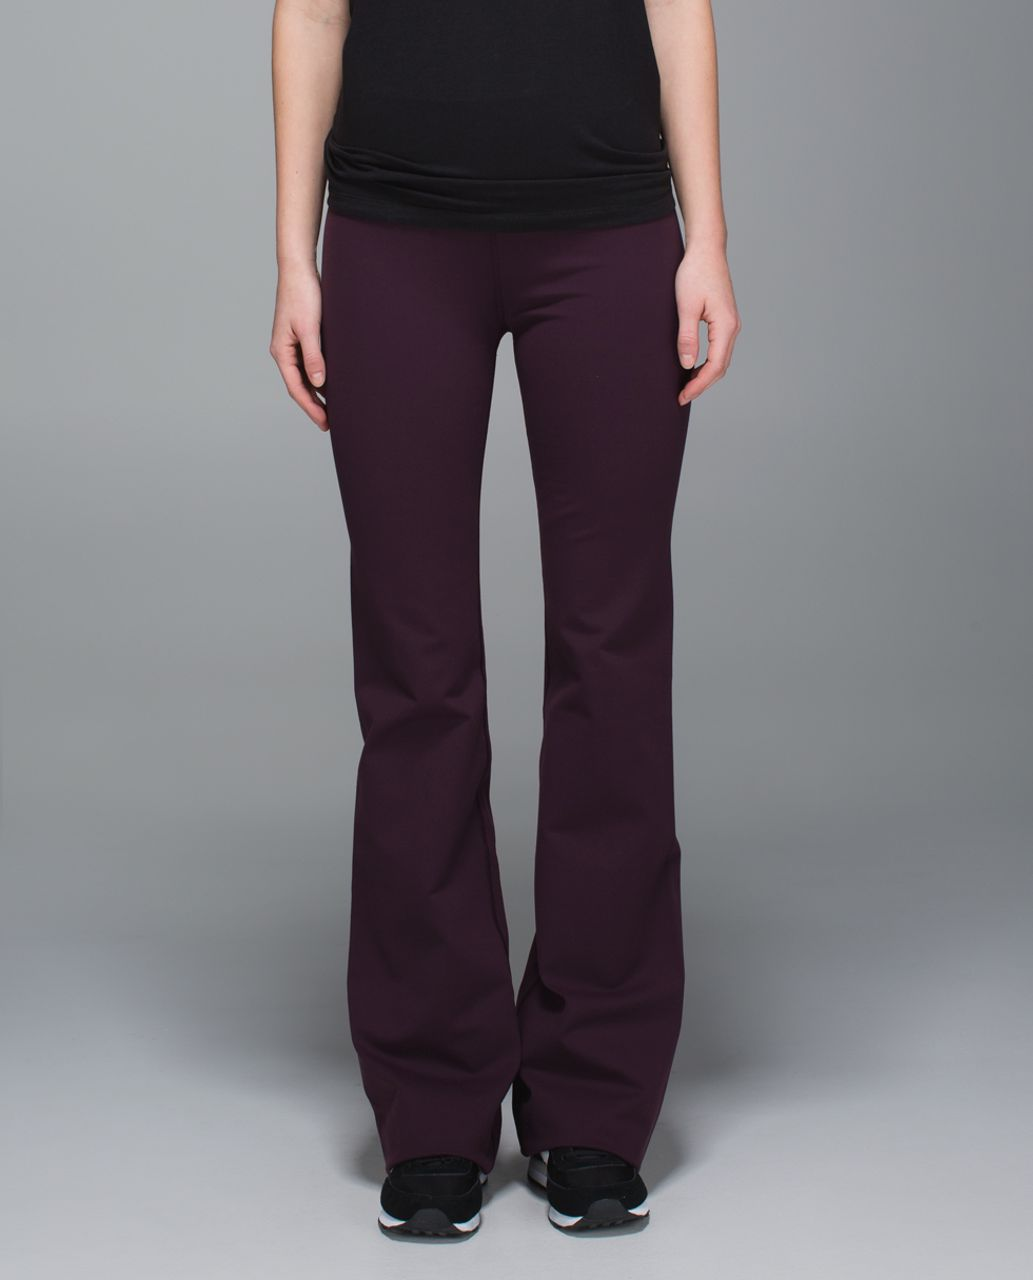 Lululemon Groove Pant II *Full-On Luon (Roll Down - Tall) - Black Cherry / Star Crushed Black Cherry Black